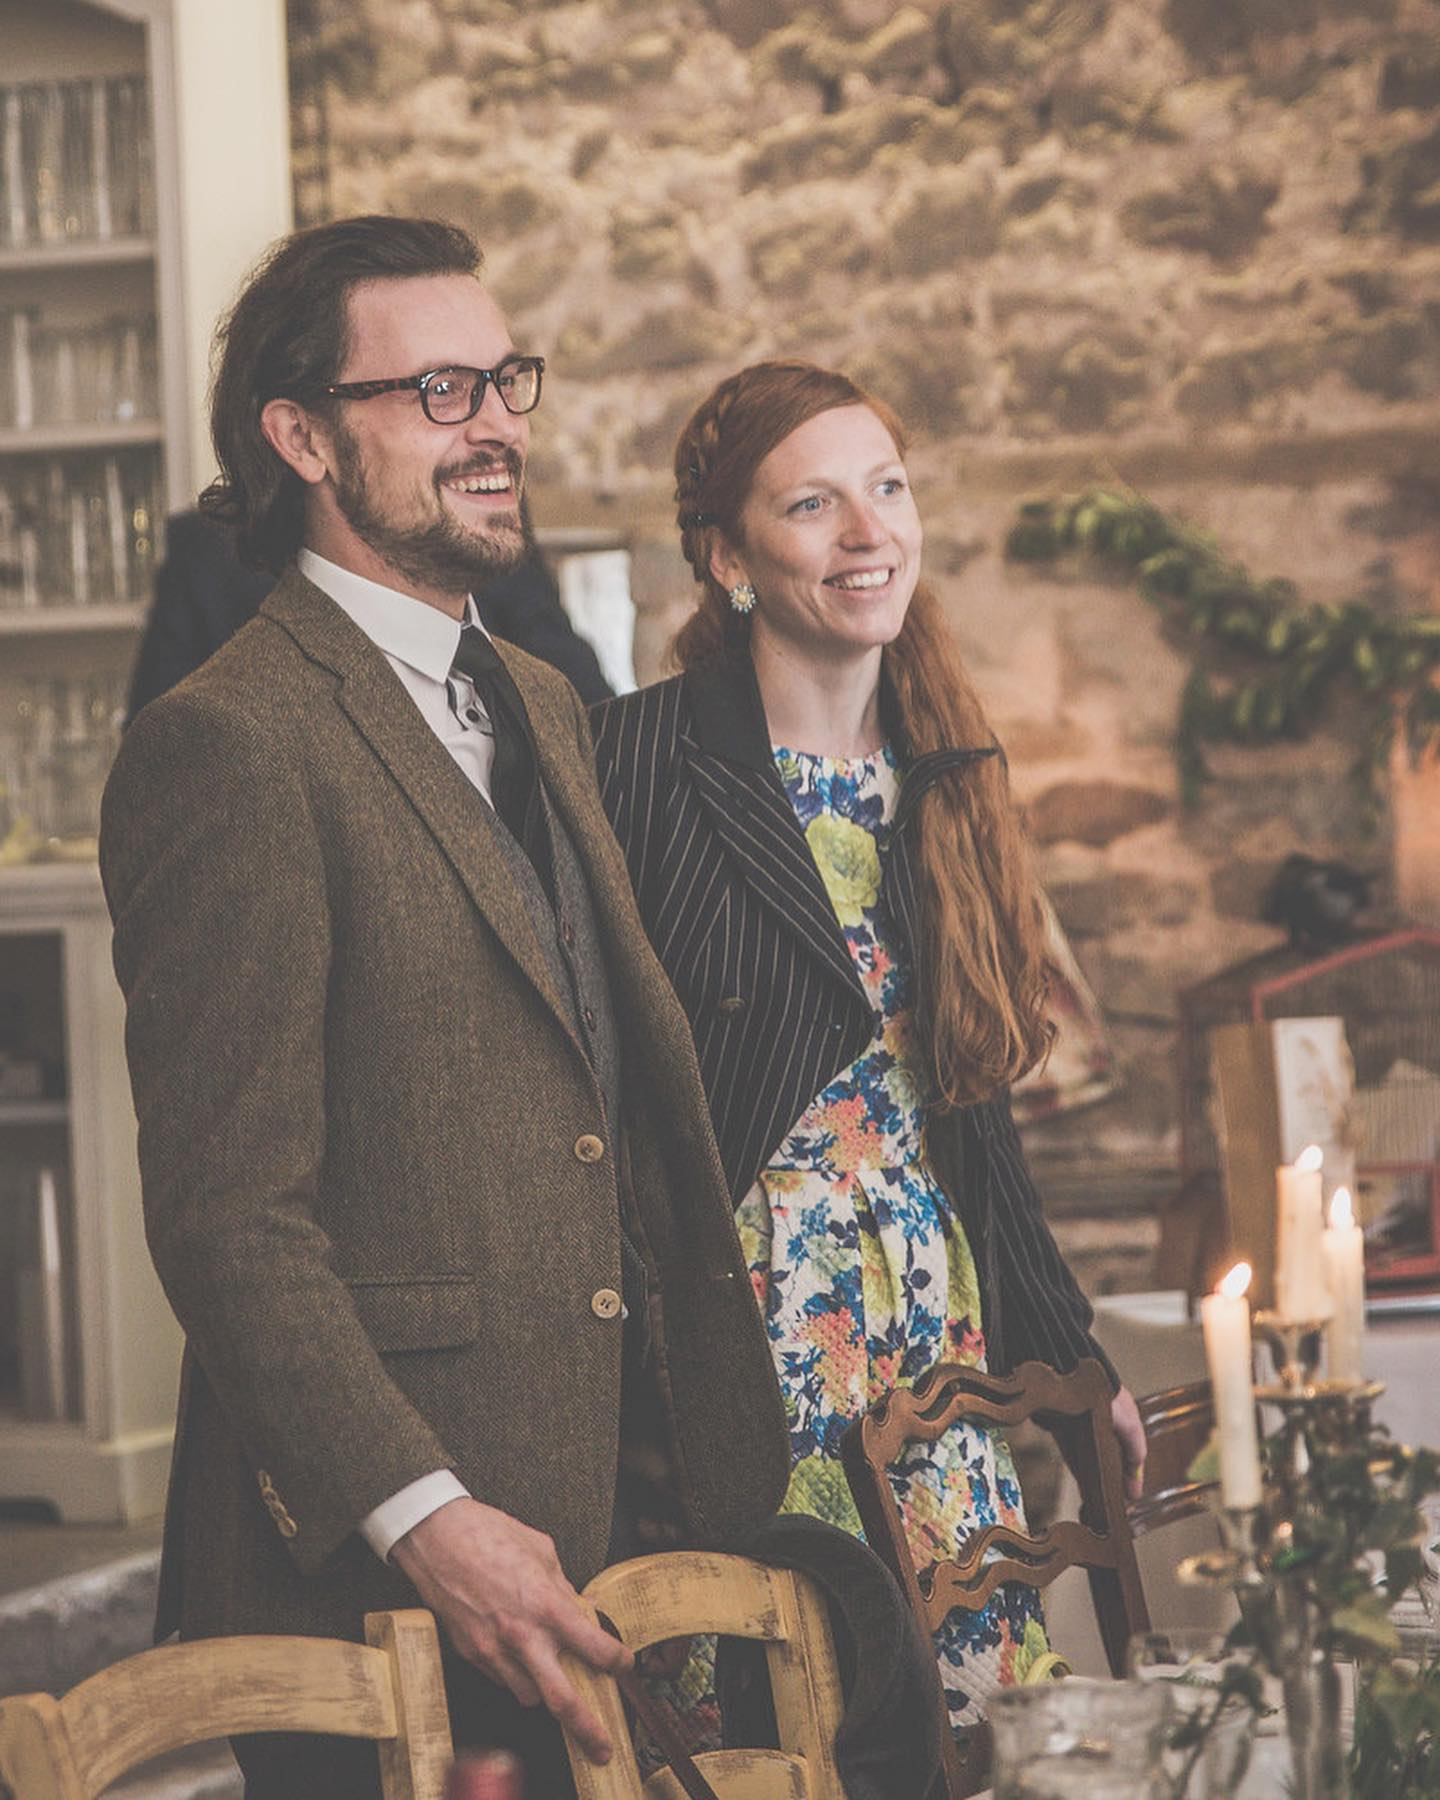 We've had quite a few new followers over the past few months, and we felt it was time for a little Hello from Tweed and I.This is us, Jo and Rob, Aka Ginger and Tweed. We met in 1998 in Cambridge where we grew up, and moved to Bath in 2003 when I started uni. My degree is in Fine art and I've always been passionate about interior design and making in general.I began selling items at local craft fairs and giving them as gifts and then things began to get busy. After years of working in a job that no longer brought me joy, I decided to focus on my passion for making and with Robs help and support, we launched our little business. 5+ years on, here we are, with almost 2000 followers and feeling so fortunate to be able to work together combining our skills and ideas to make lovely things for people to enjoy using. Thank you to everyone for their support and for following our journey. ...#handcrafted #homewares #ginger #tweed #journey #follow #support #workingtogether #supportingsmallbusinesses #smallbusinesshoals #growth #interiordesign #craft #lovemyjob